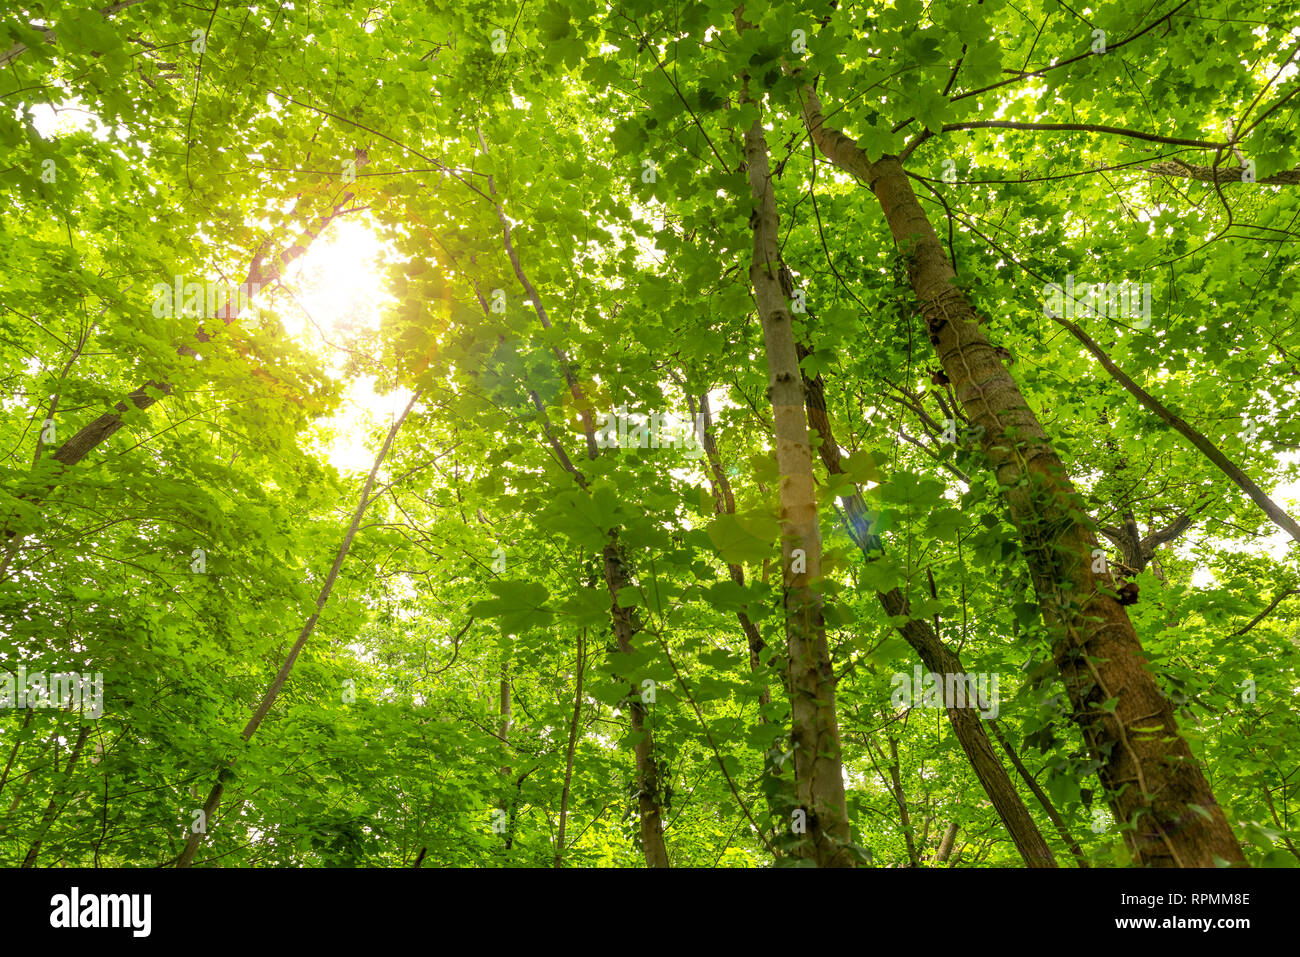 Inside the woods, looking upward - Stock Image